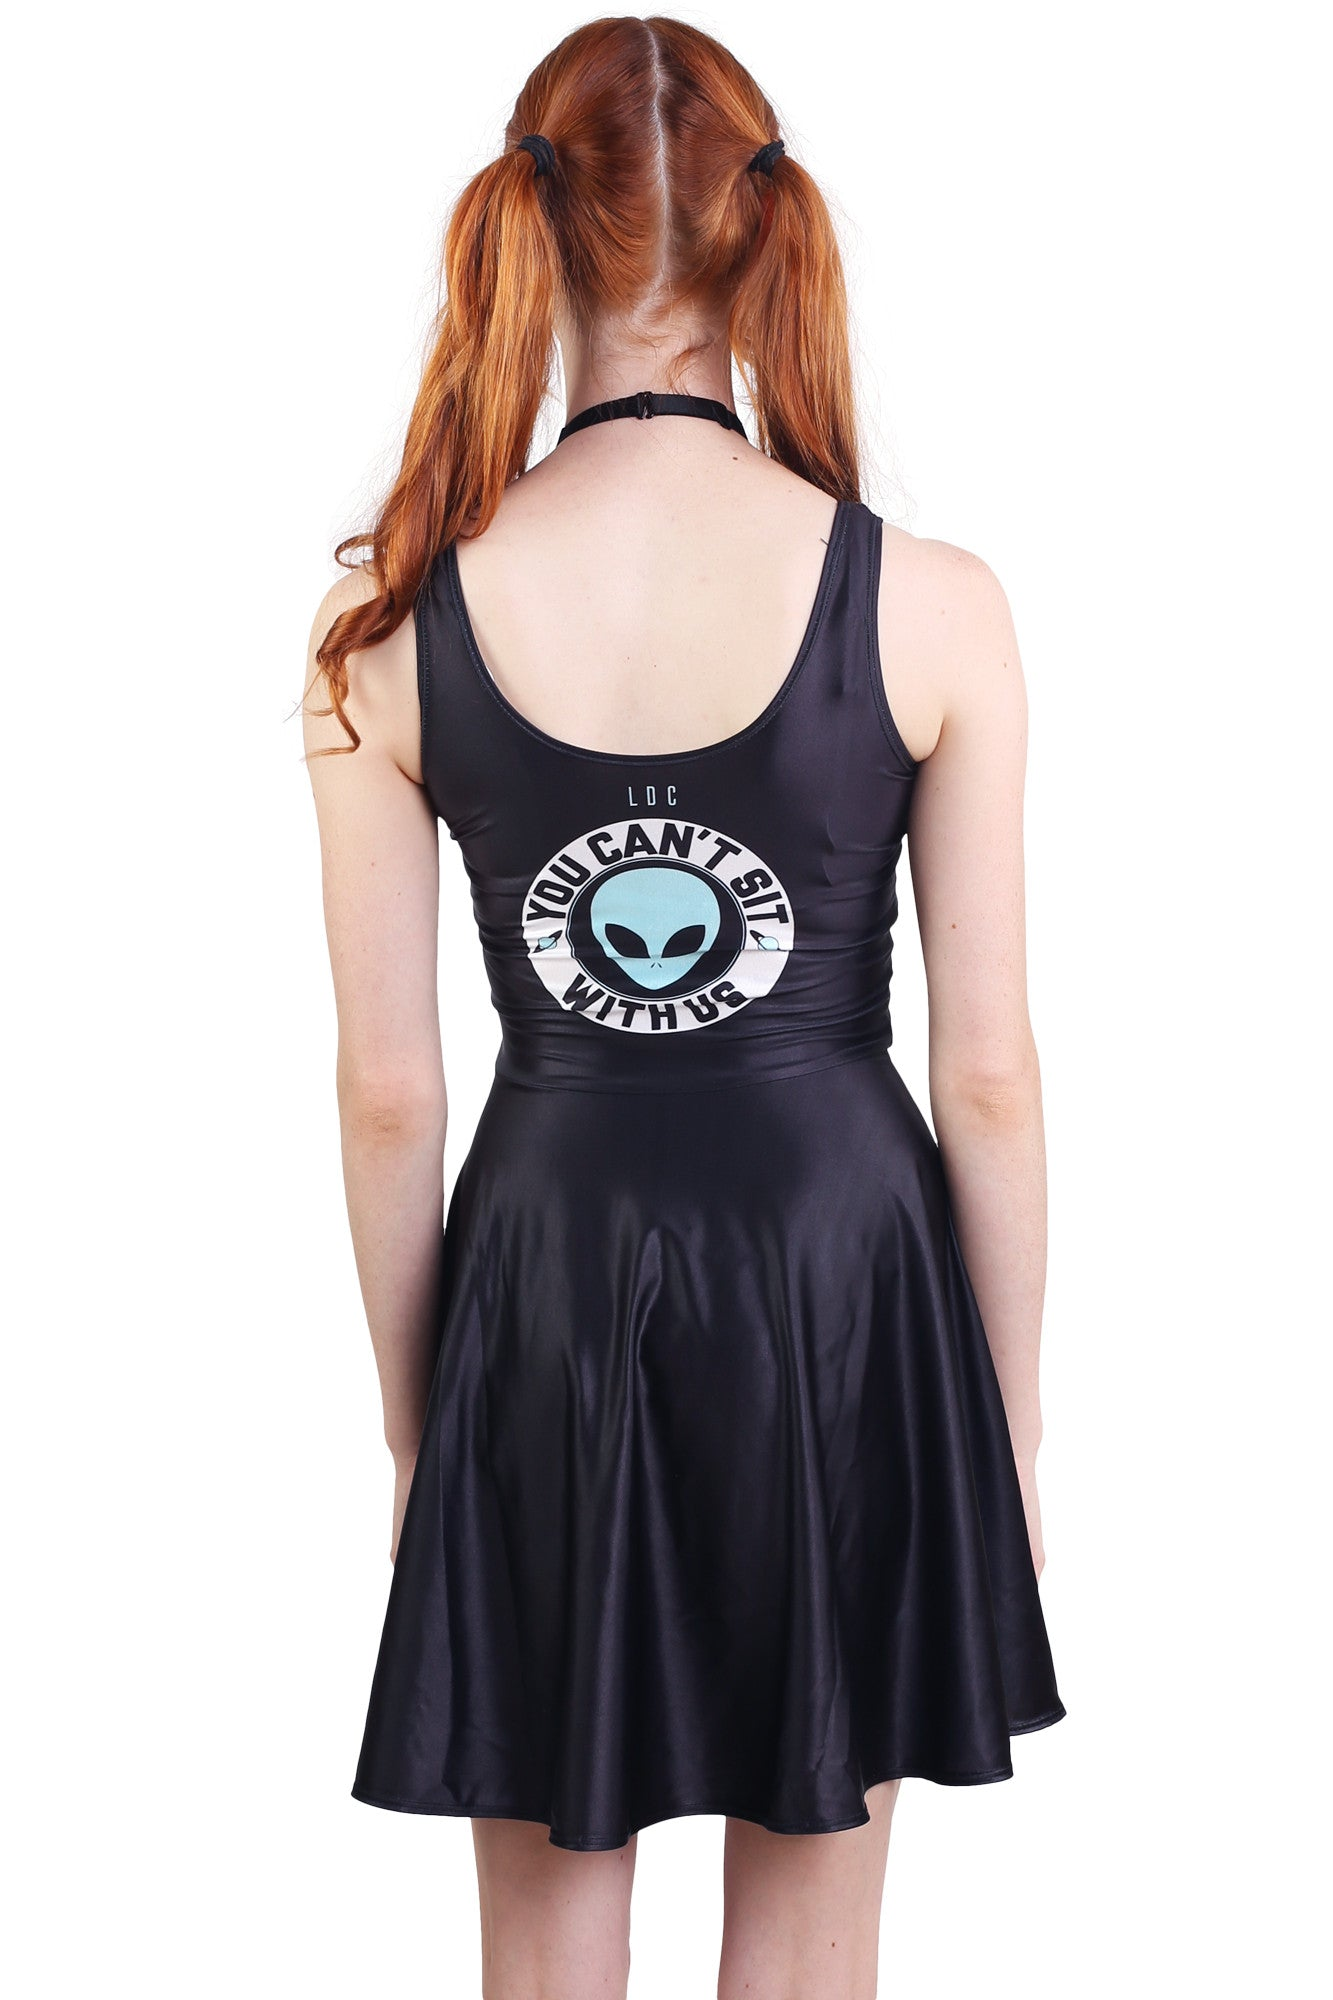 You Can't Sit With Us Skater Dress